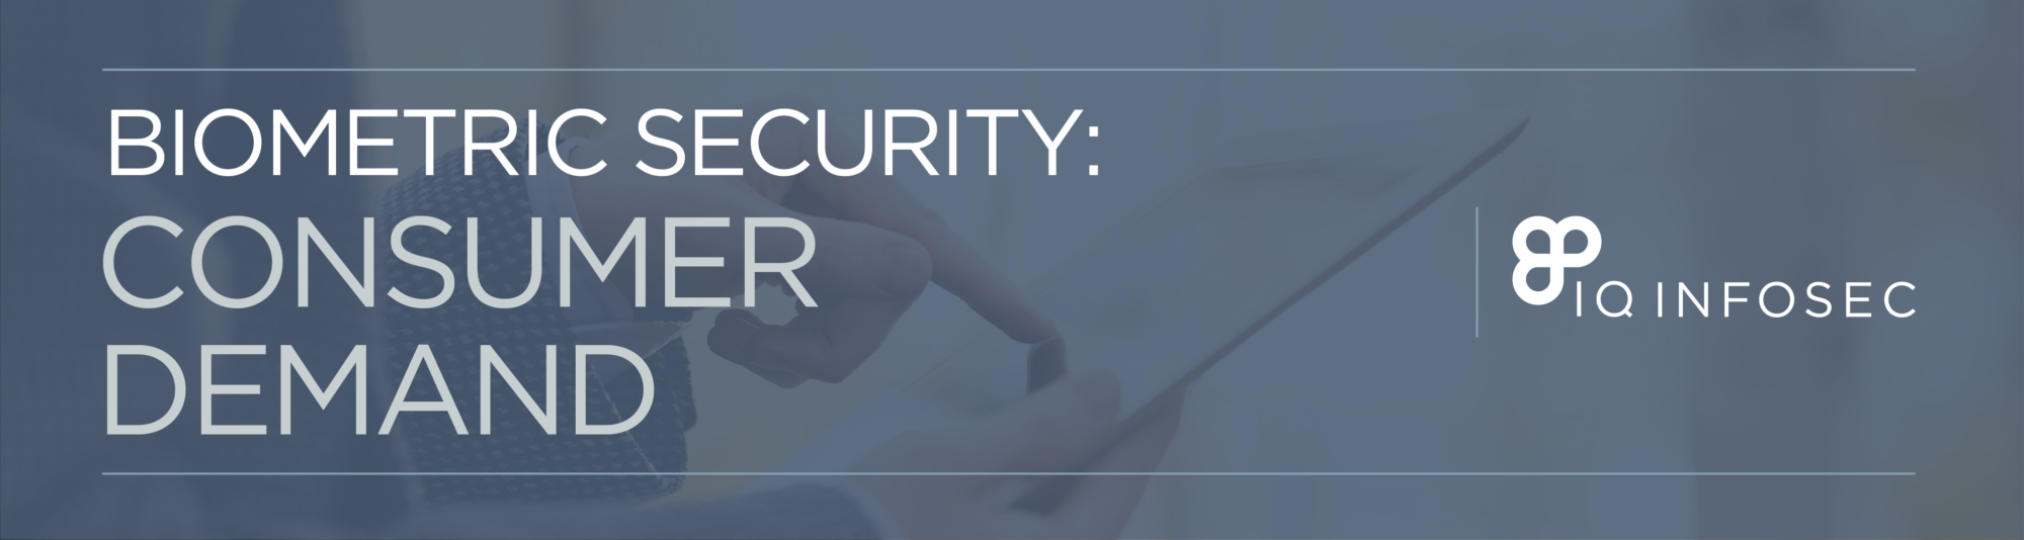 thumbnail for biometric security: consumer demand infographic